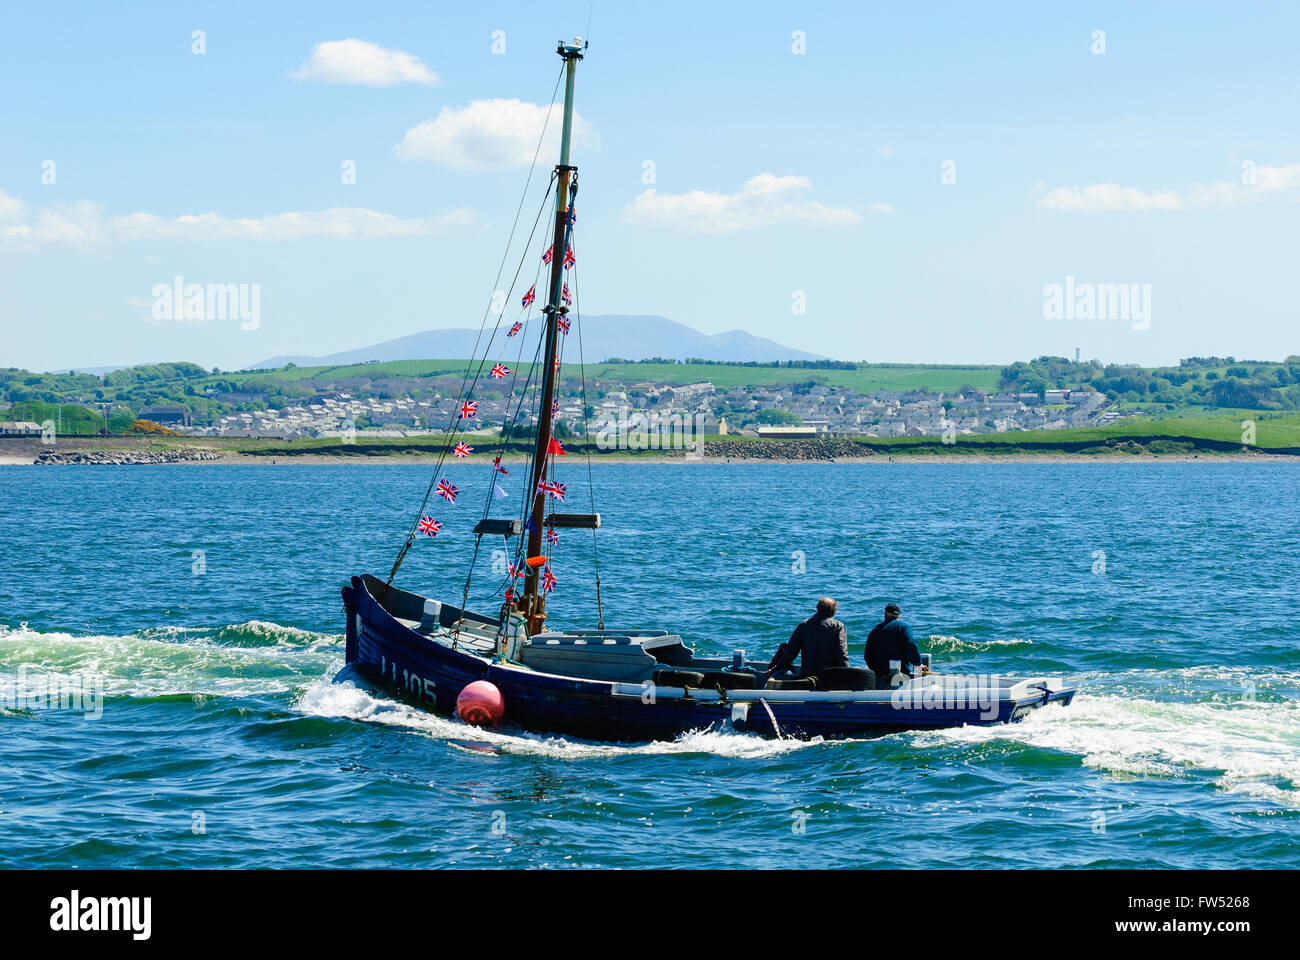 LL105 Euphoria at the start, Maryport Trawler Race 2013, Maryport, Cumbria - Stock Image